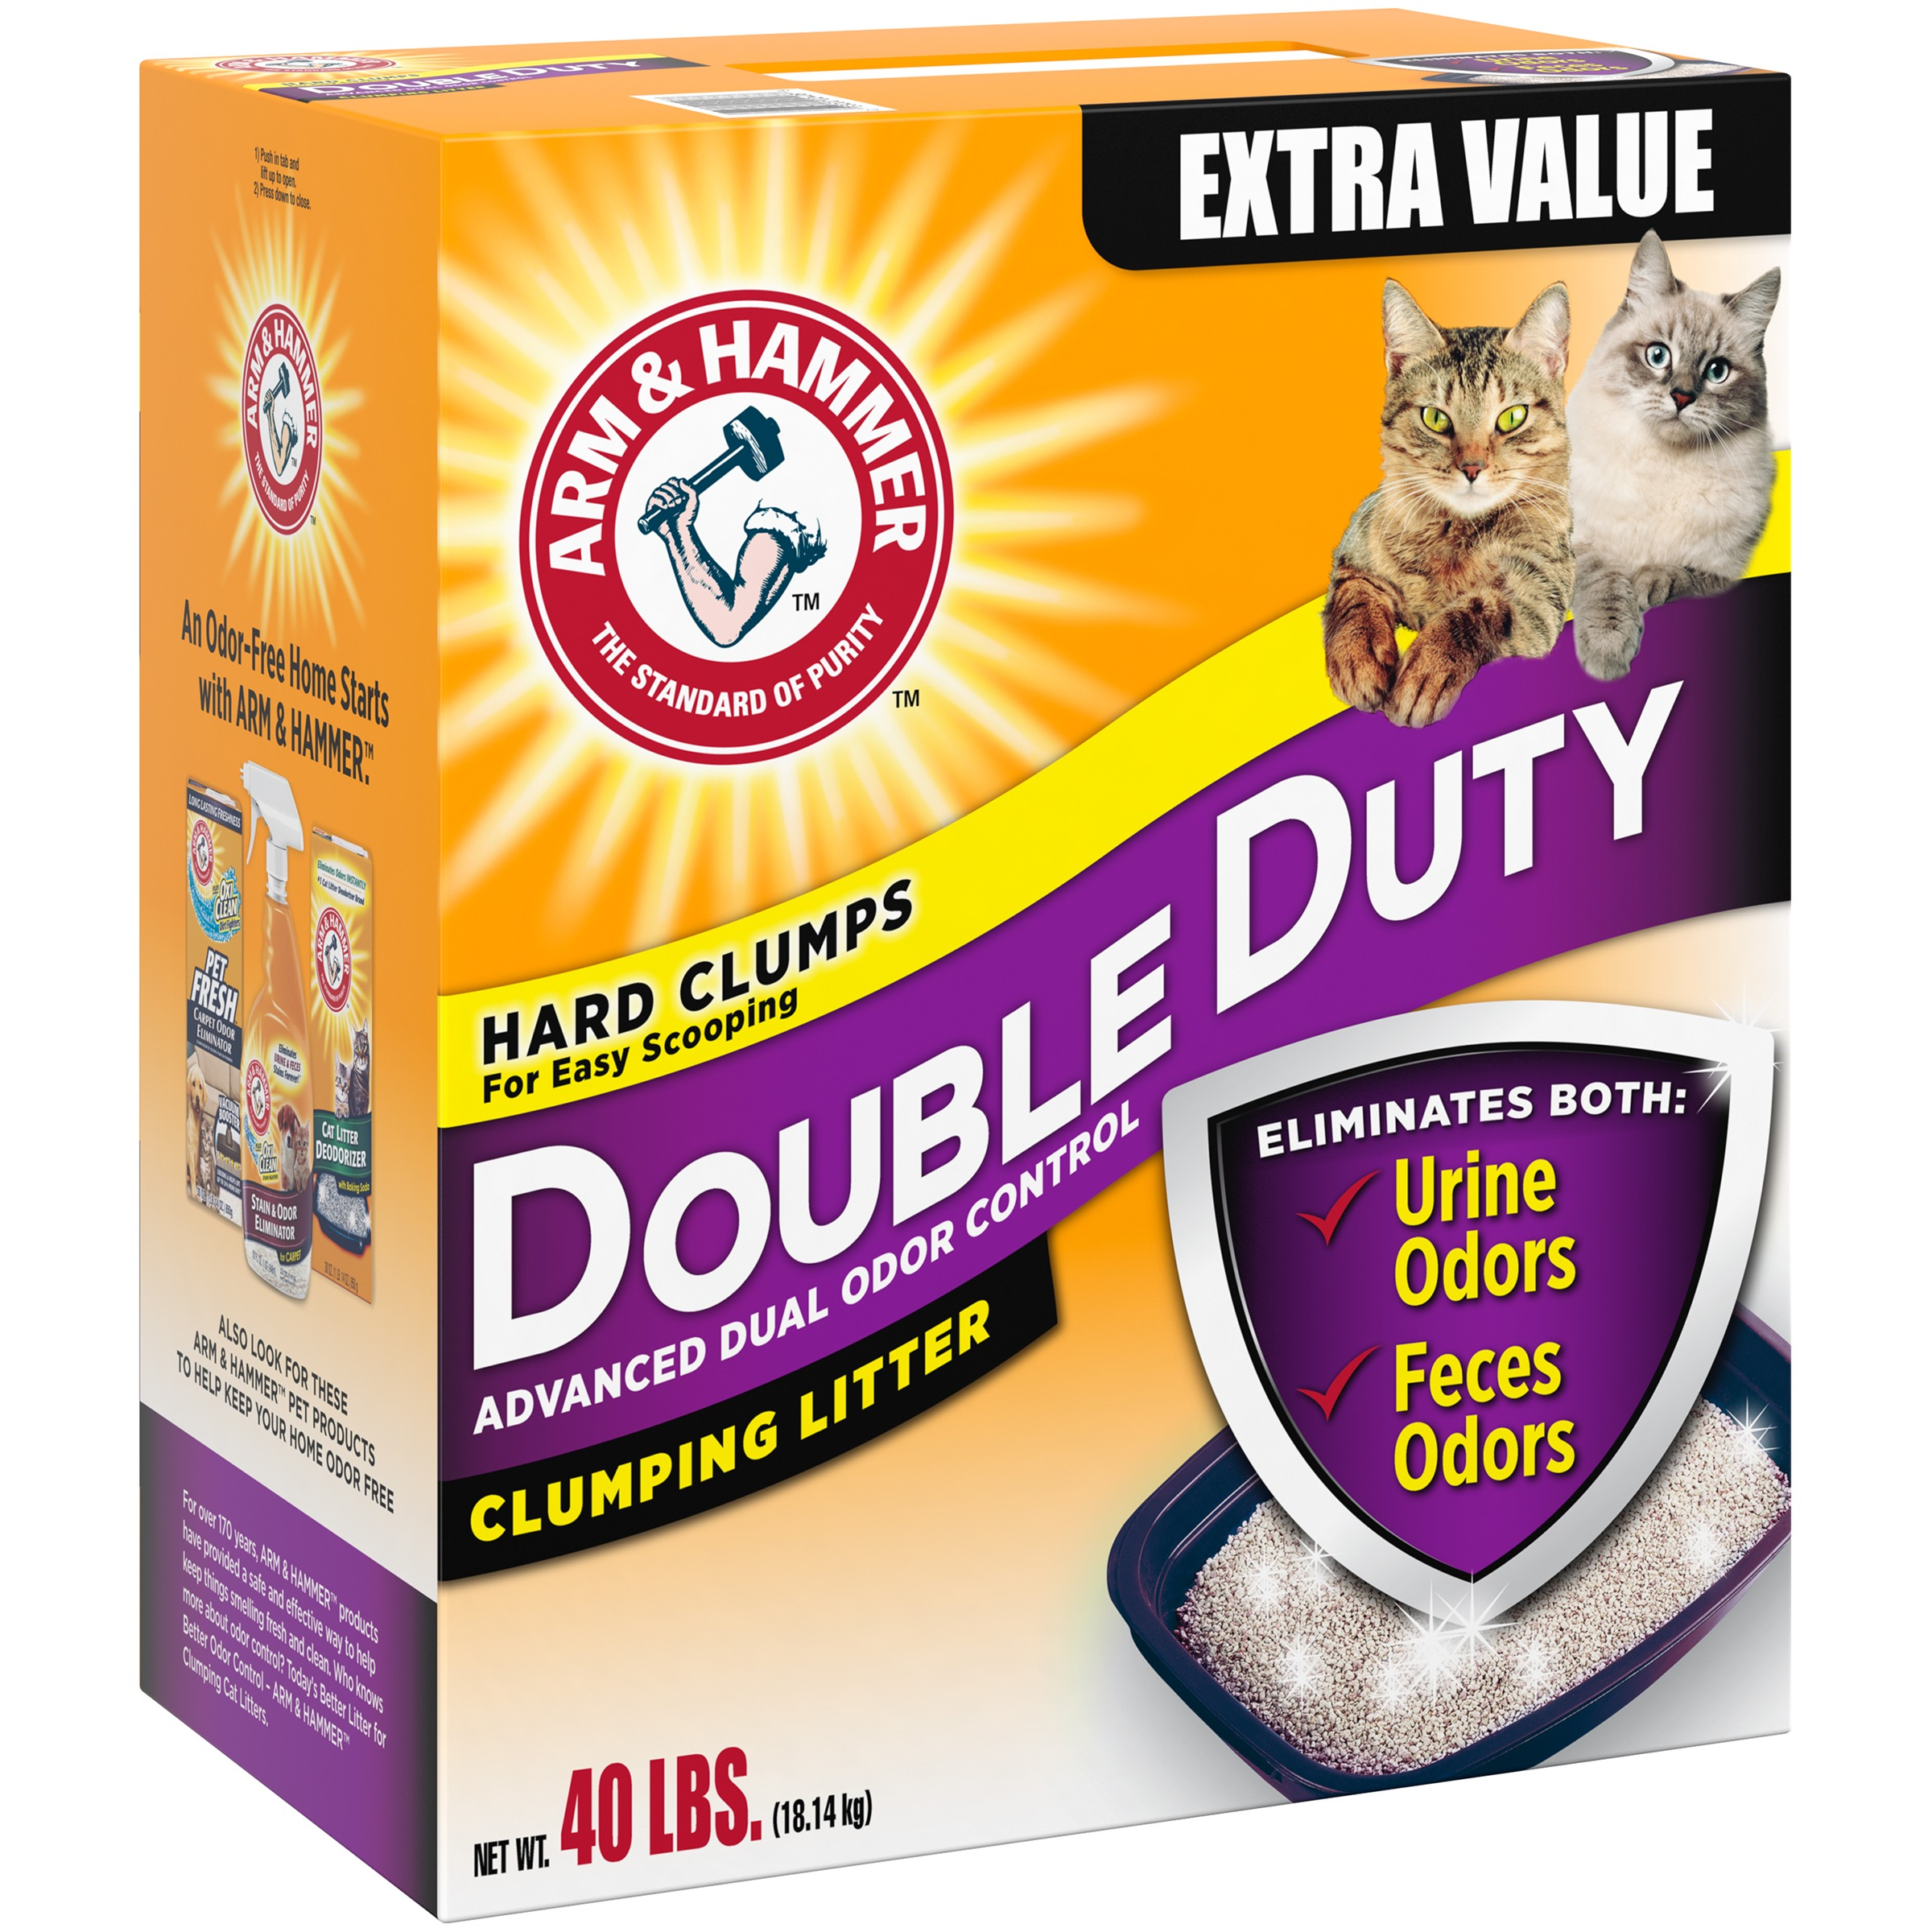 Arm & Hammer™ Double Duty Advanced Dual Odor Control Clumping Cat Litter 40 lb. Box